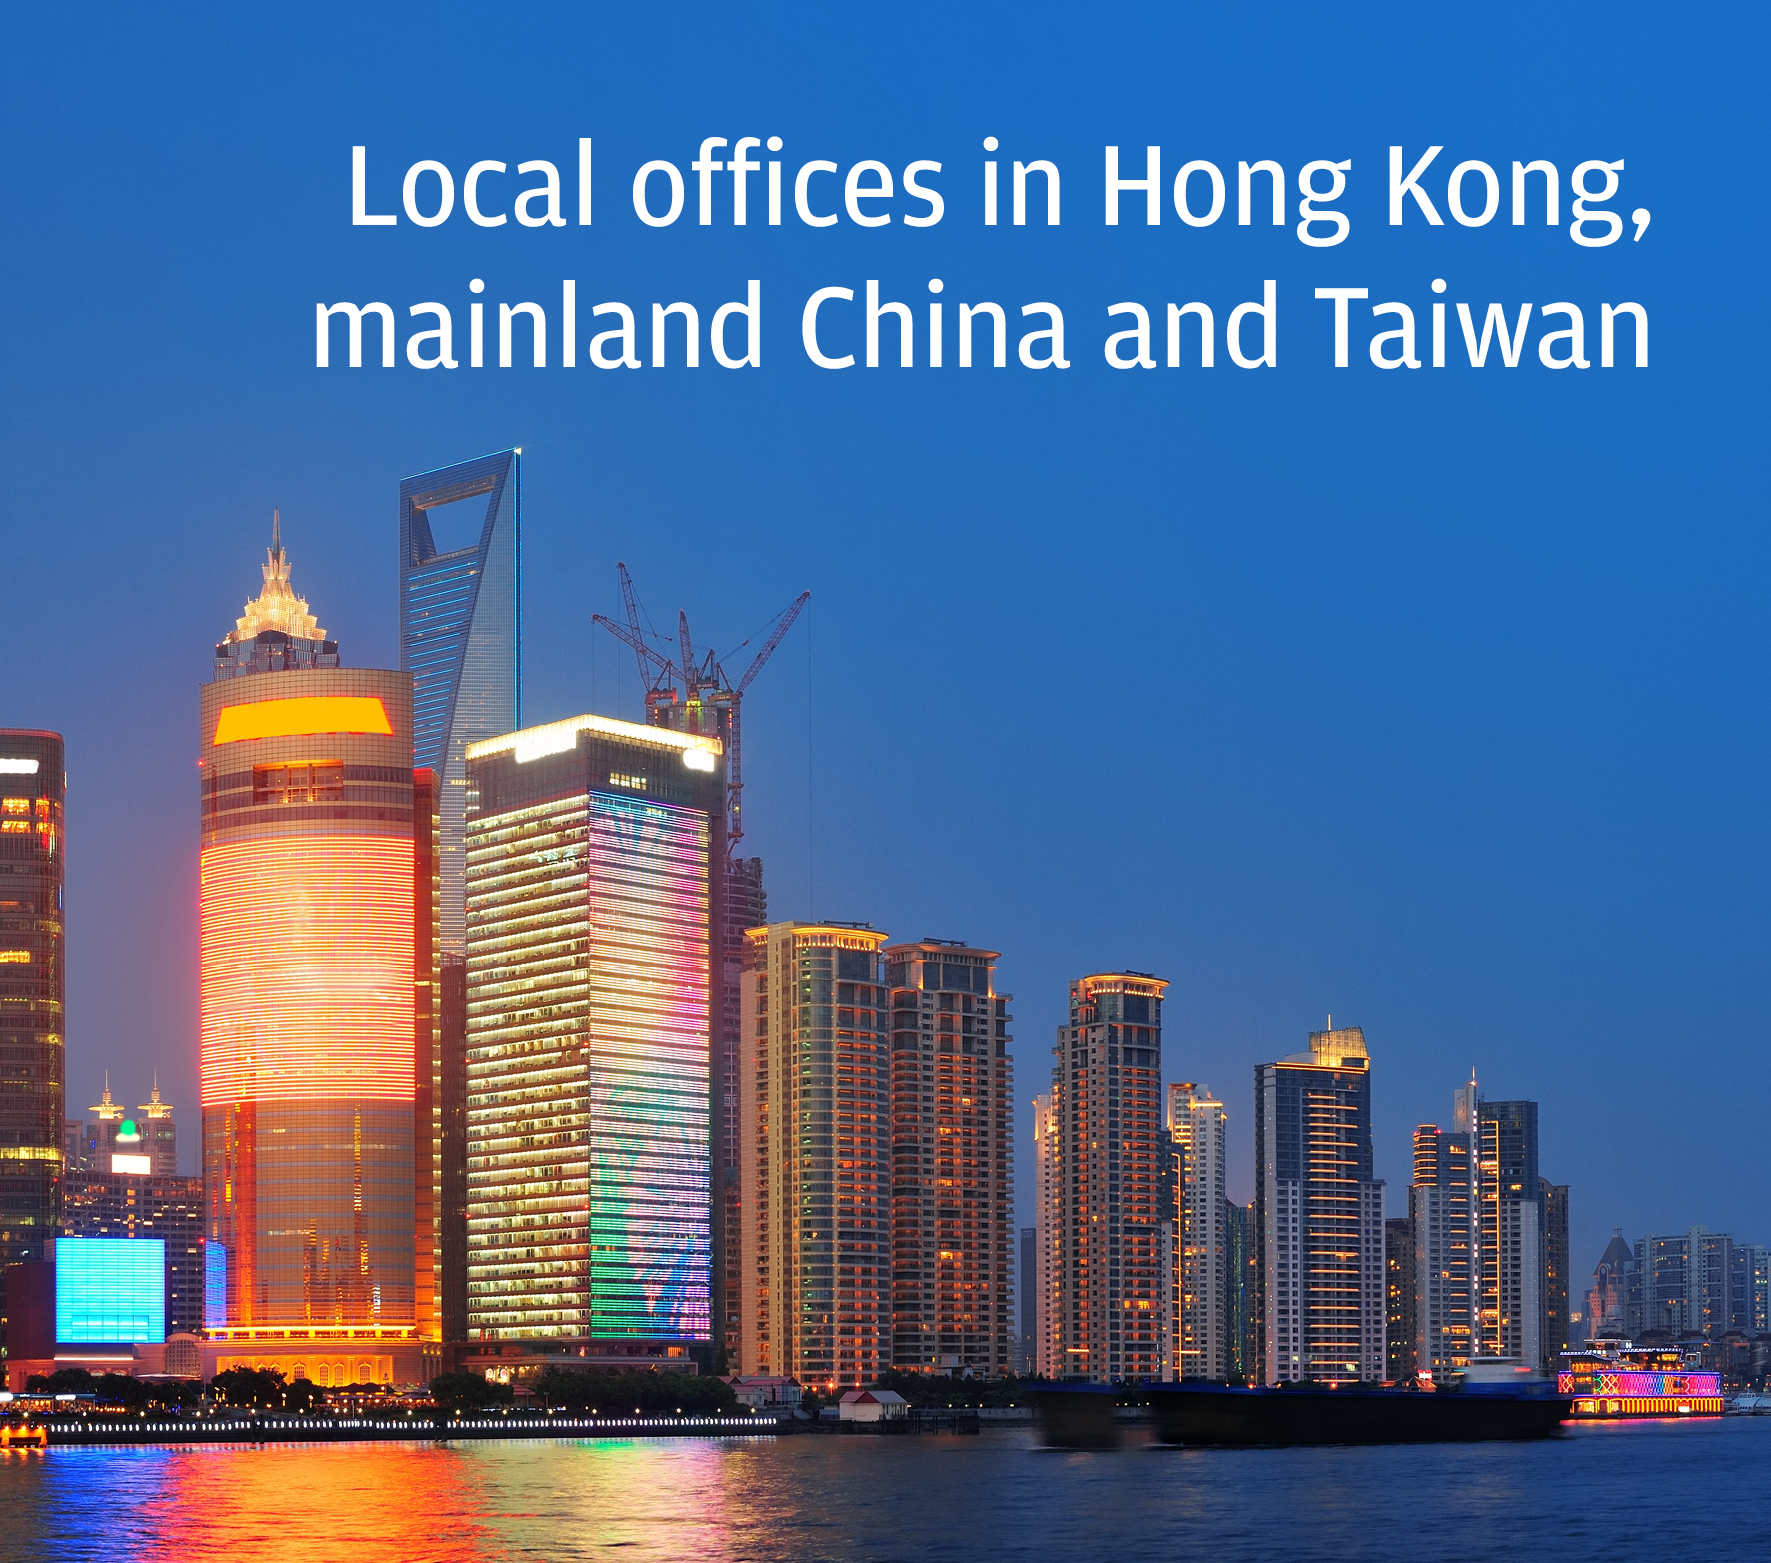 Local offices in Hong Kong, mainland China and Taiwan